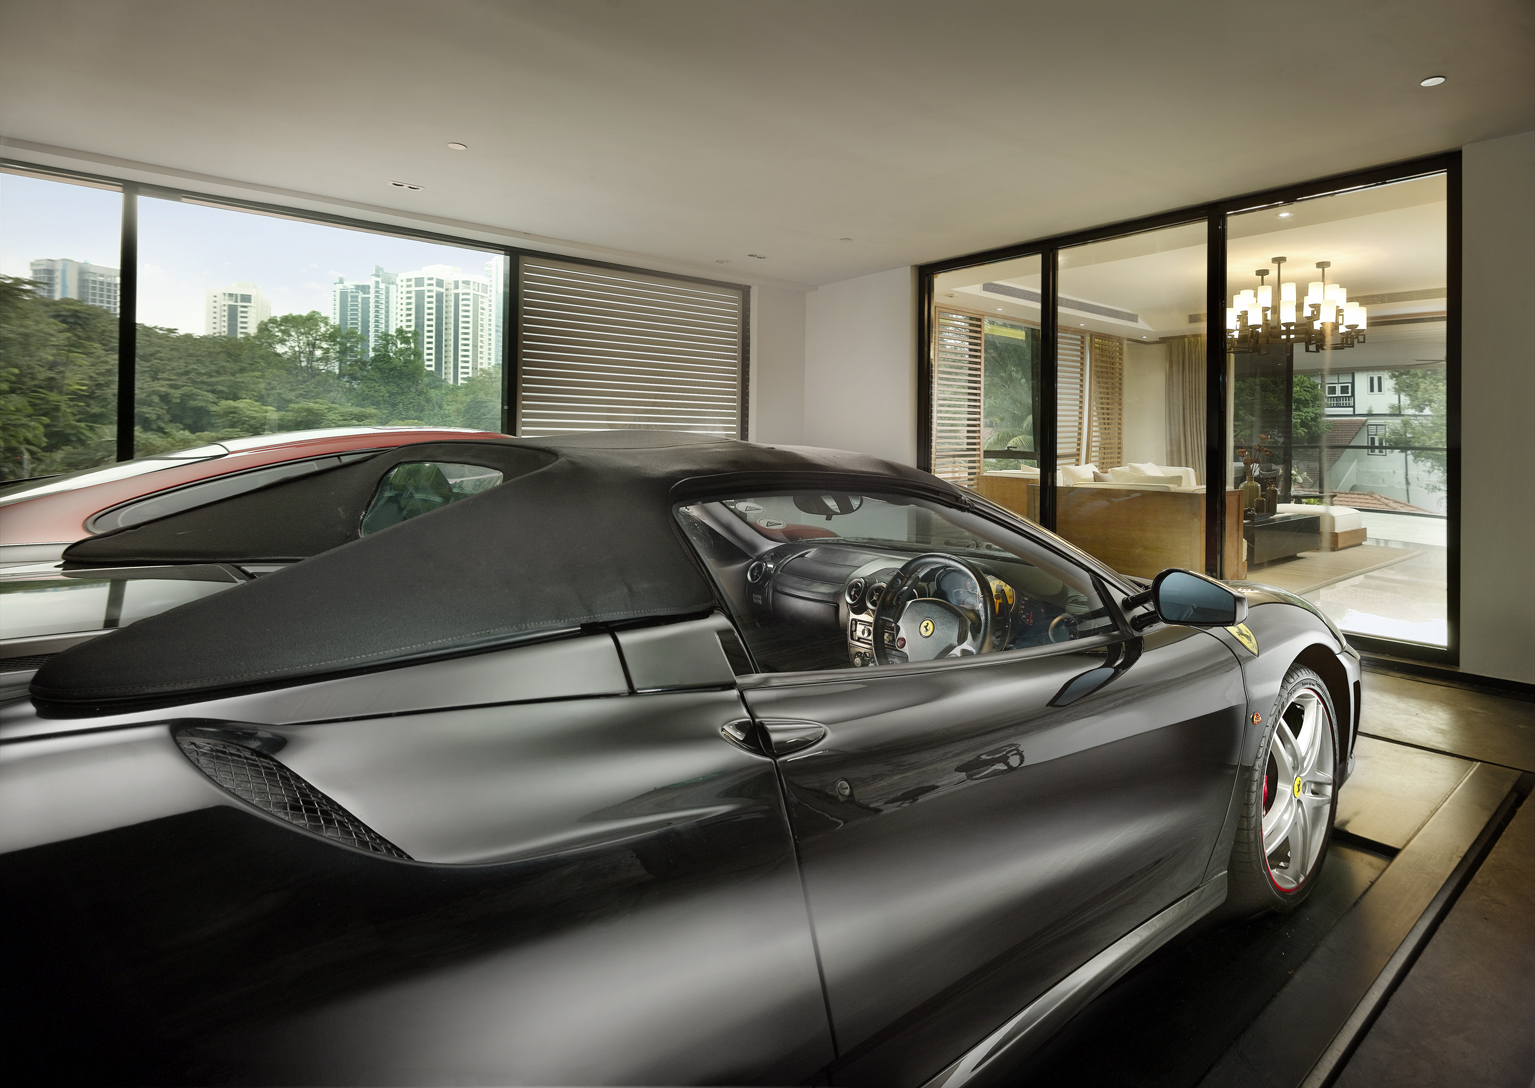 Car Lift To Basement Garage Singapore S Ultimate Luxury Trend The Sky Garage